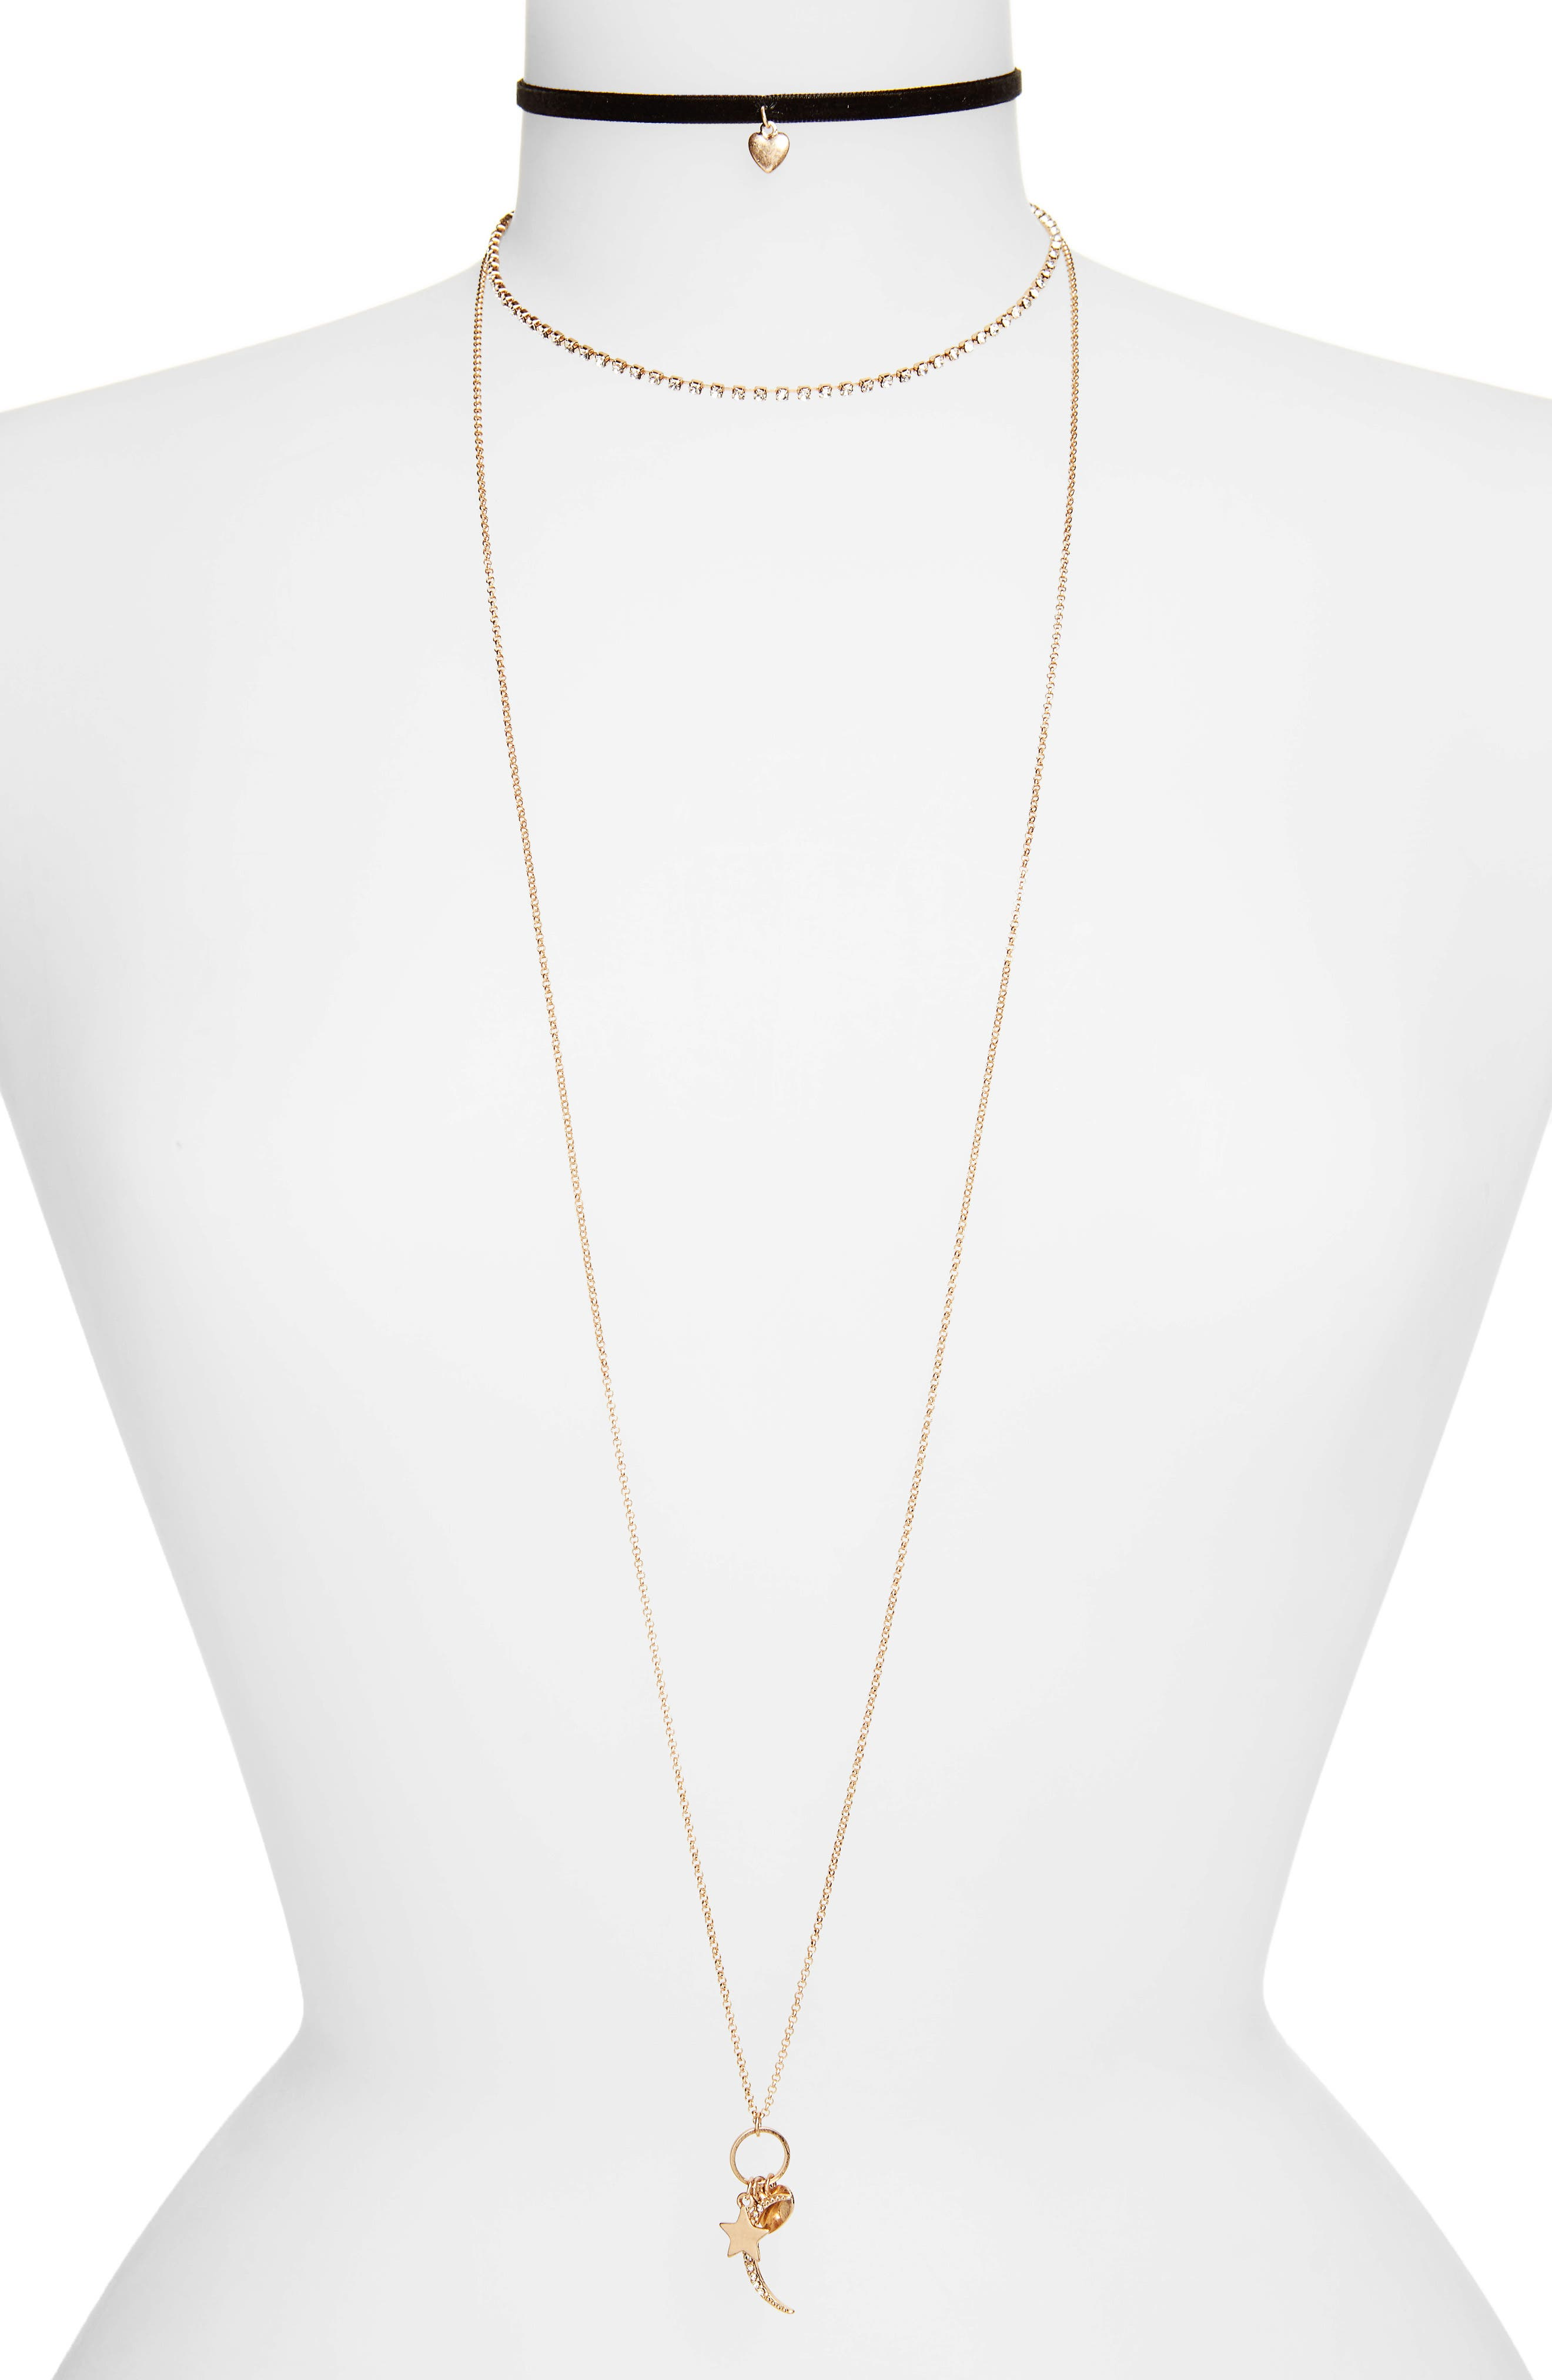 Main Image - Topshop Hearts & Star Necklaces (Set of 2)